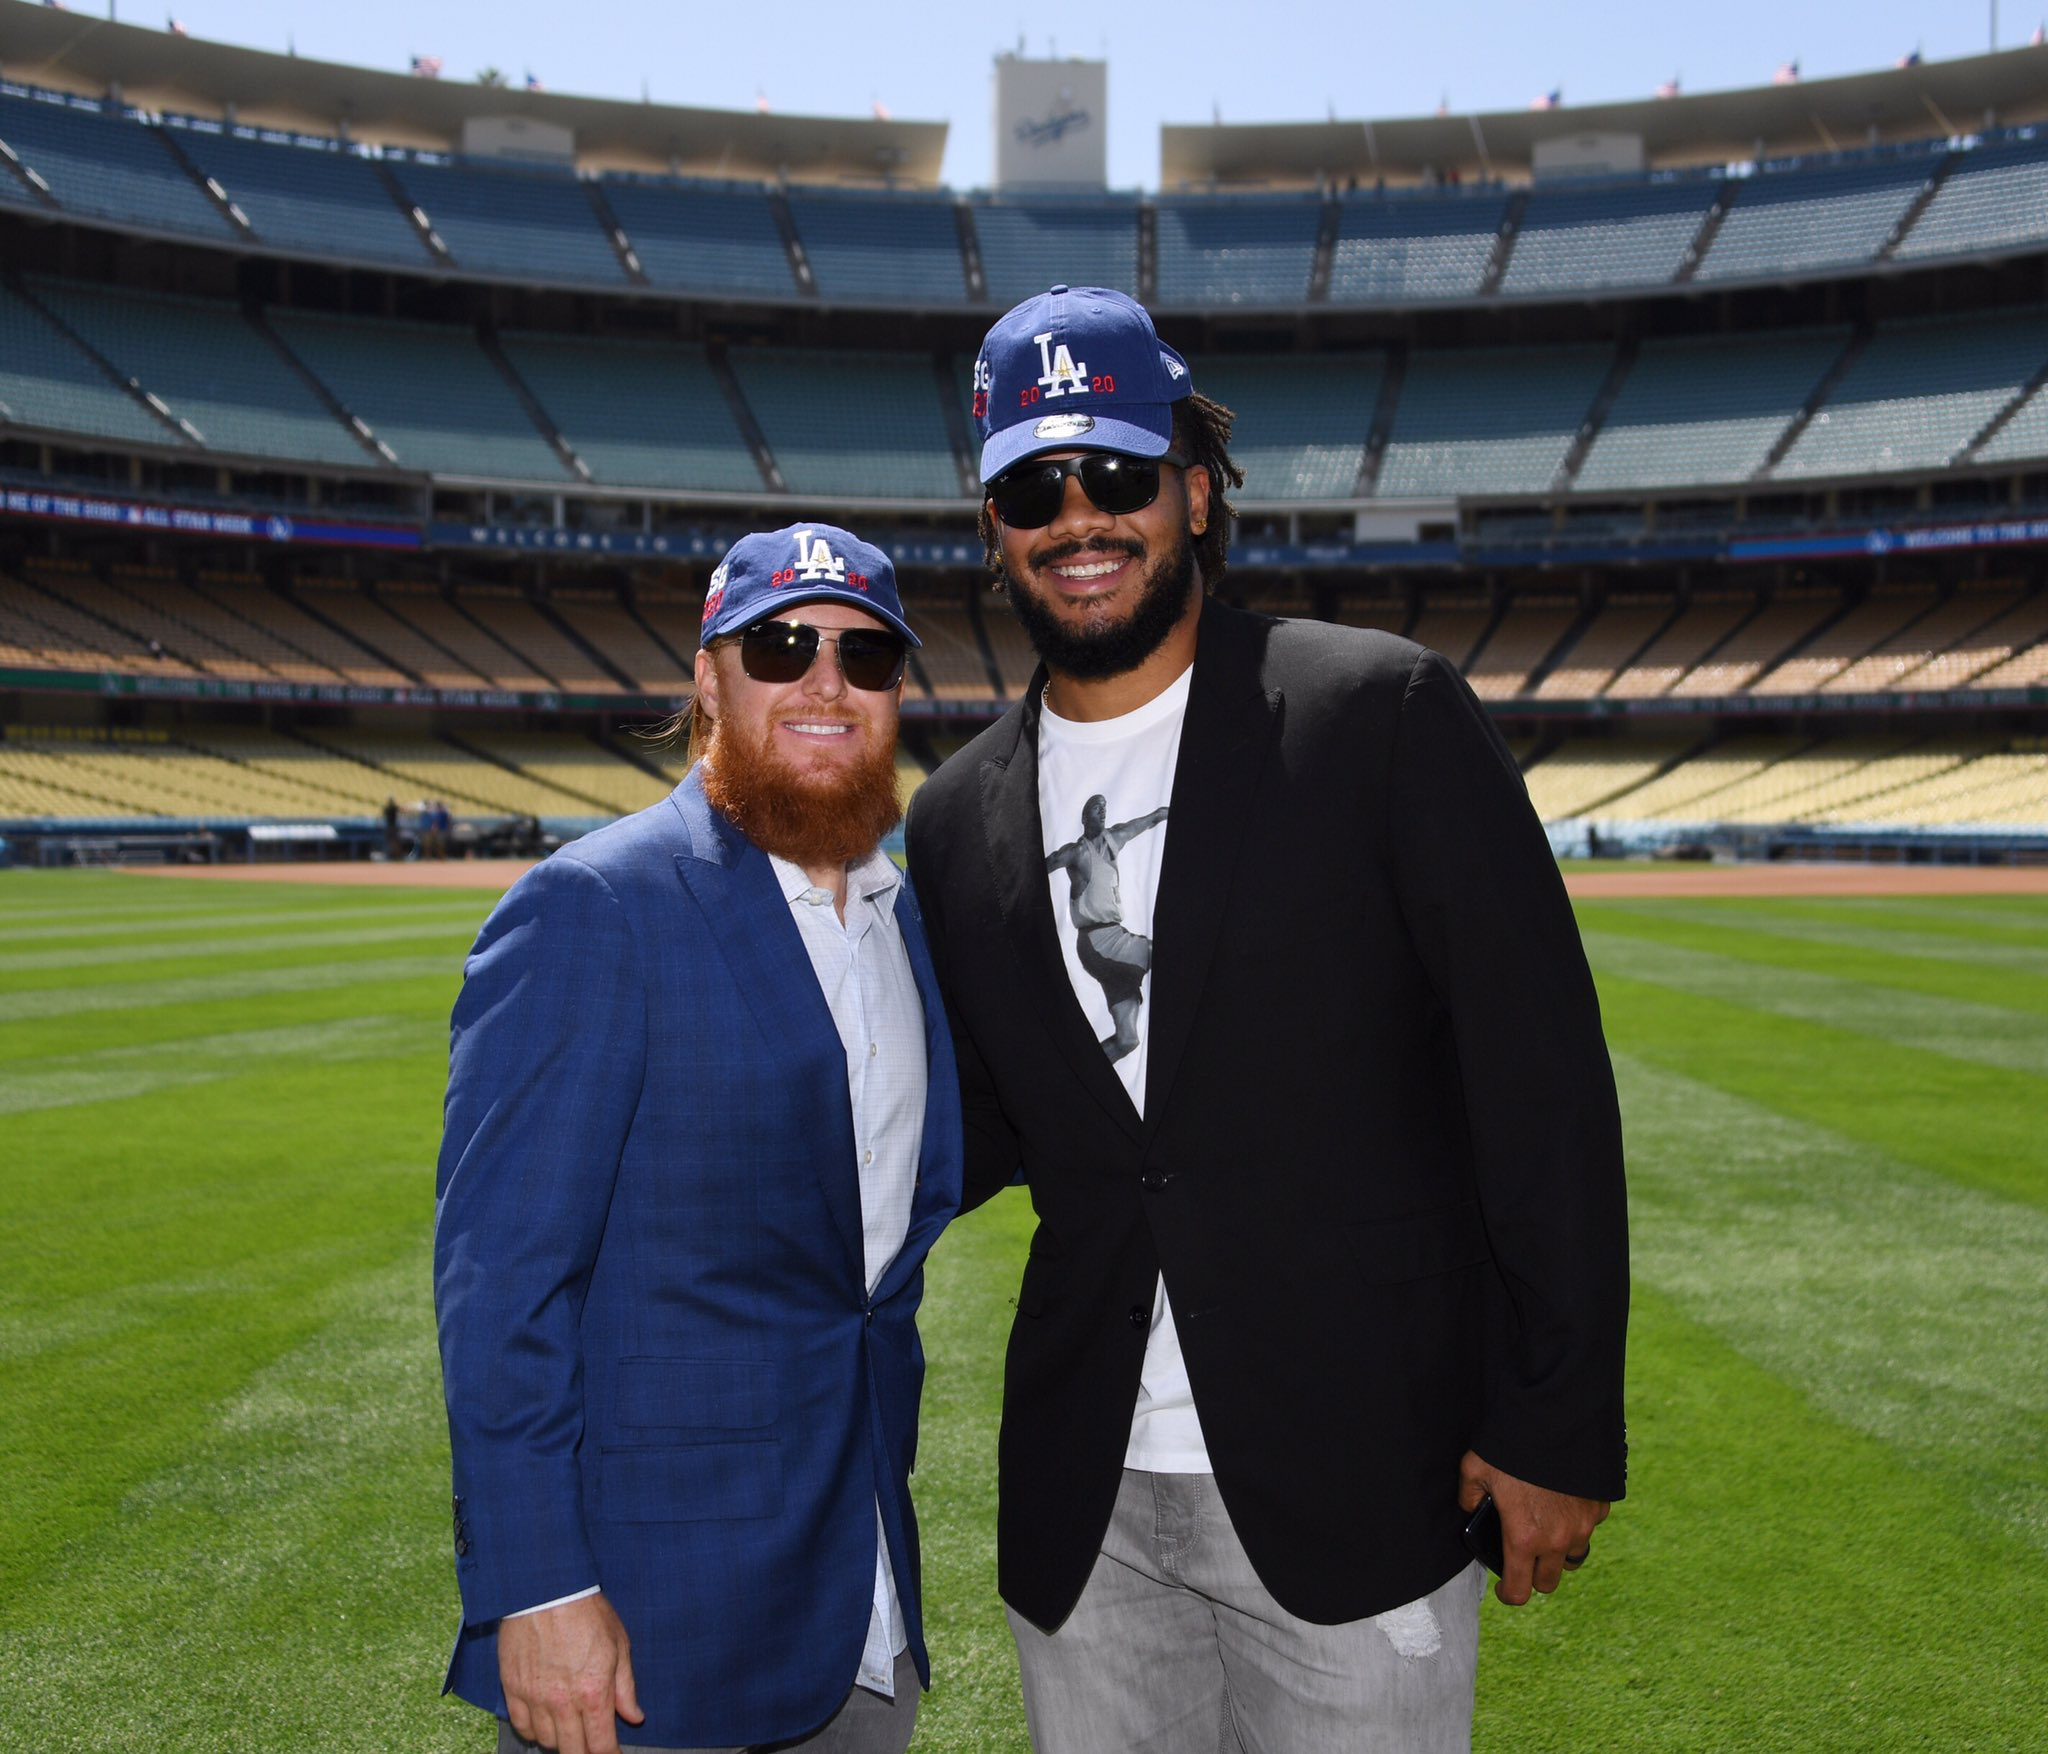 Happy To Join Redturn2 Doc Dodgers Legends And Execs Mlb Execs And La Officials For The Big Announcement Today Mlb As Dodgers Girl Dodgers La Dodgers